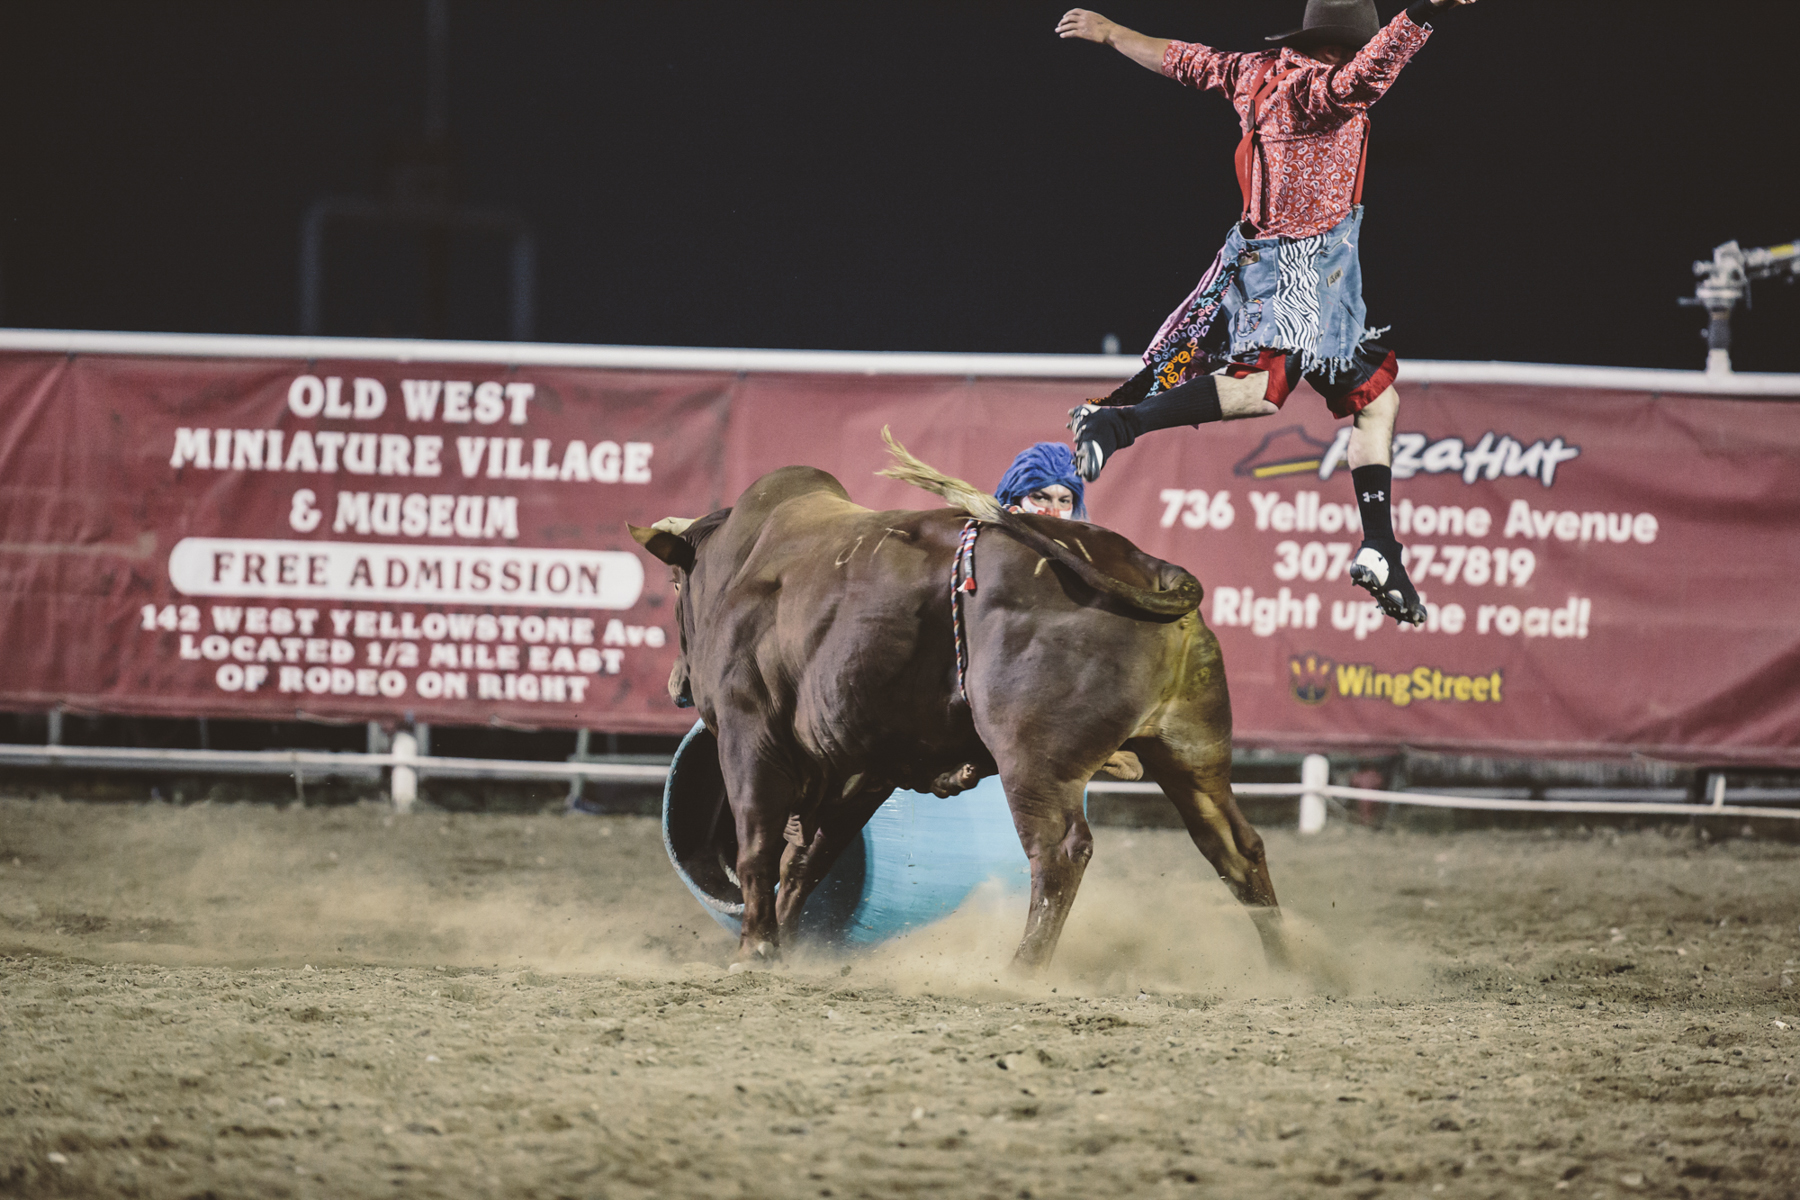 Bull Bucking on Rider at a Rodeo